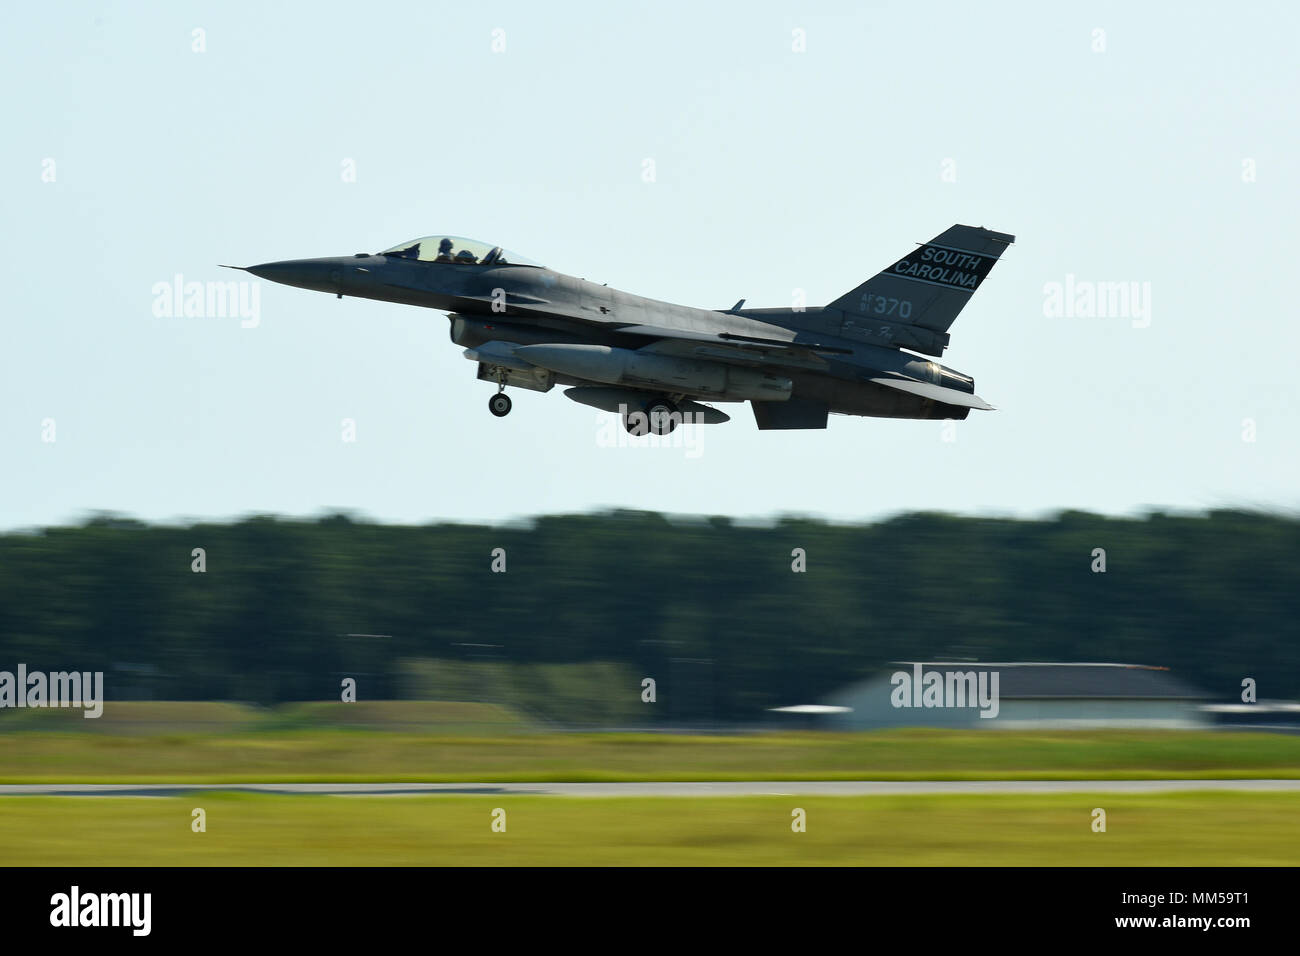 U S  Air Force F-16 Fighting Falcon fighter jets from the